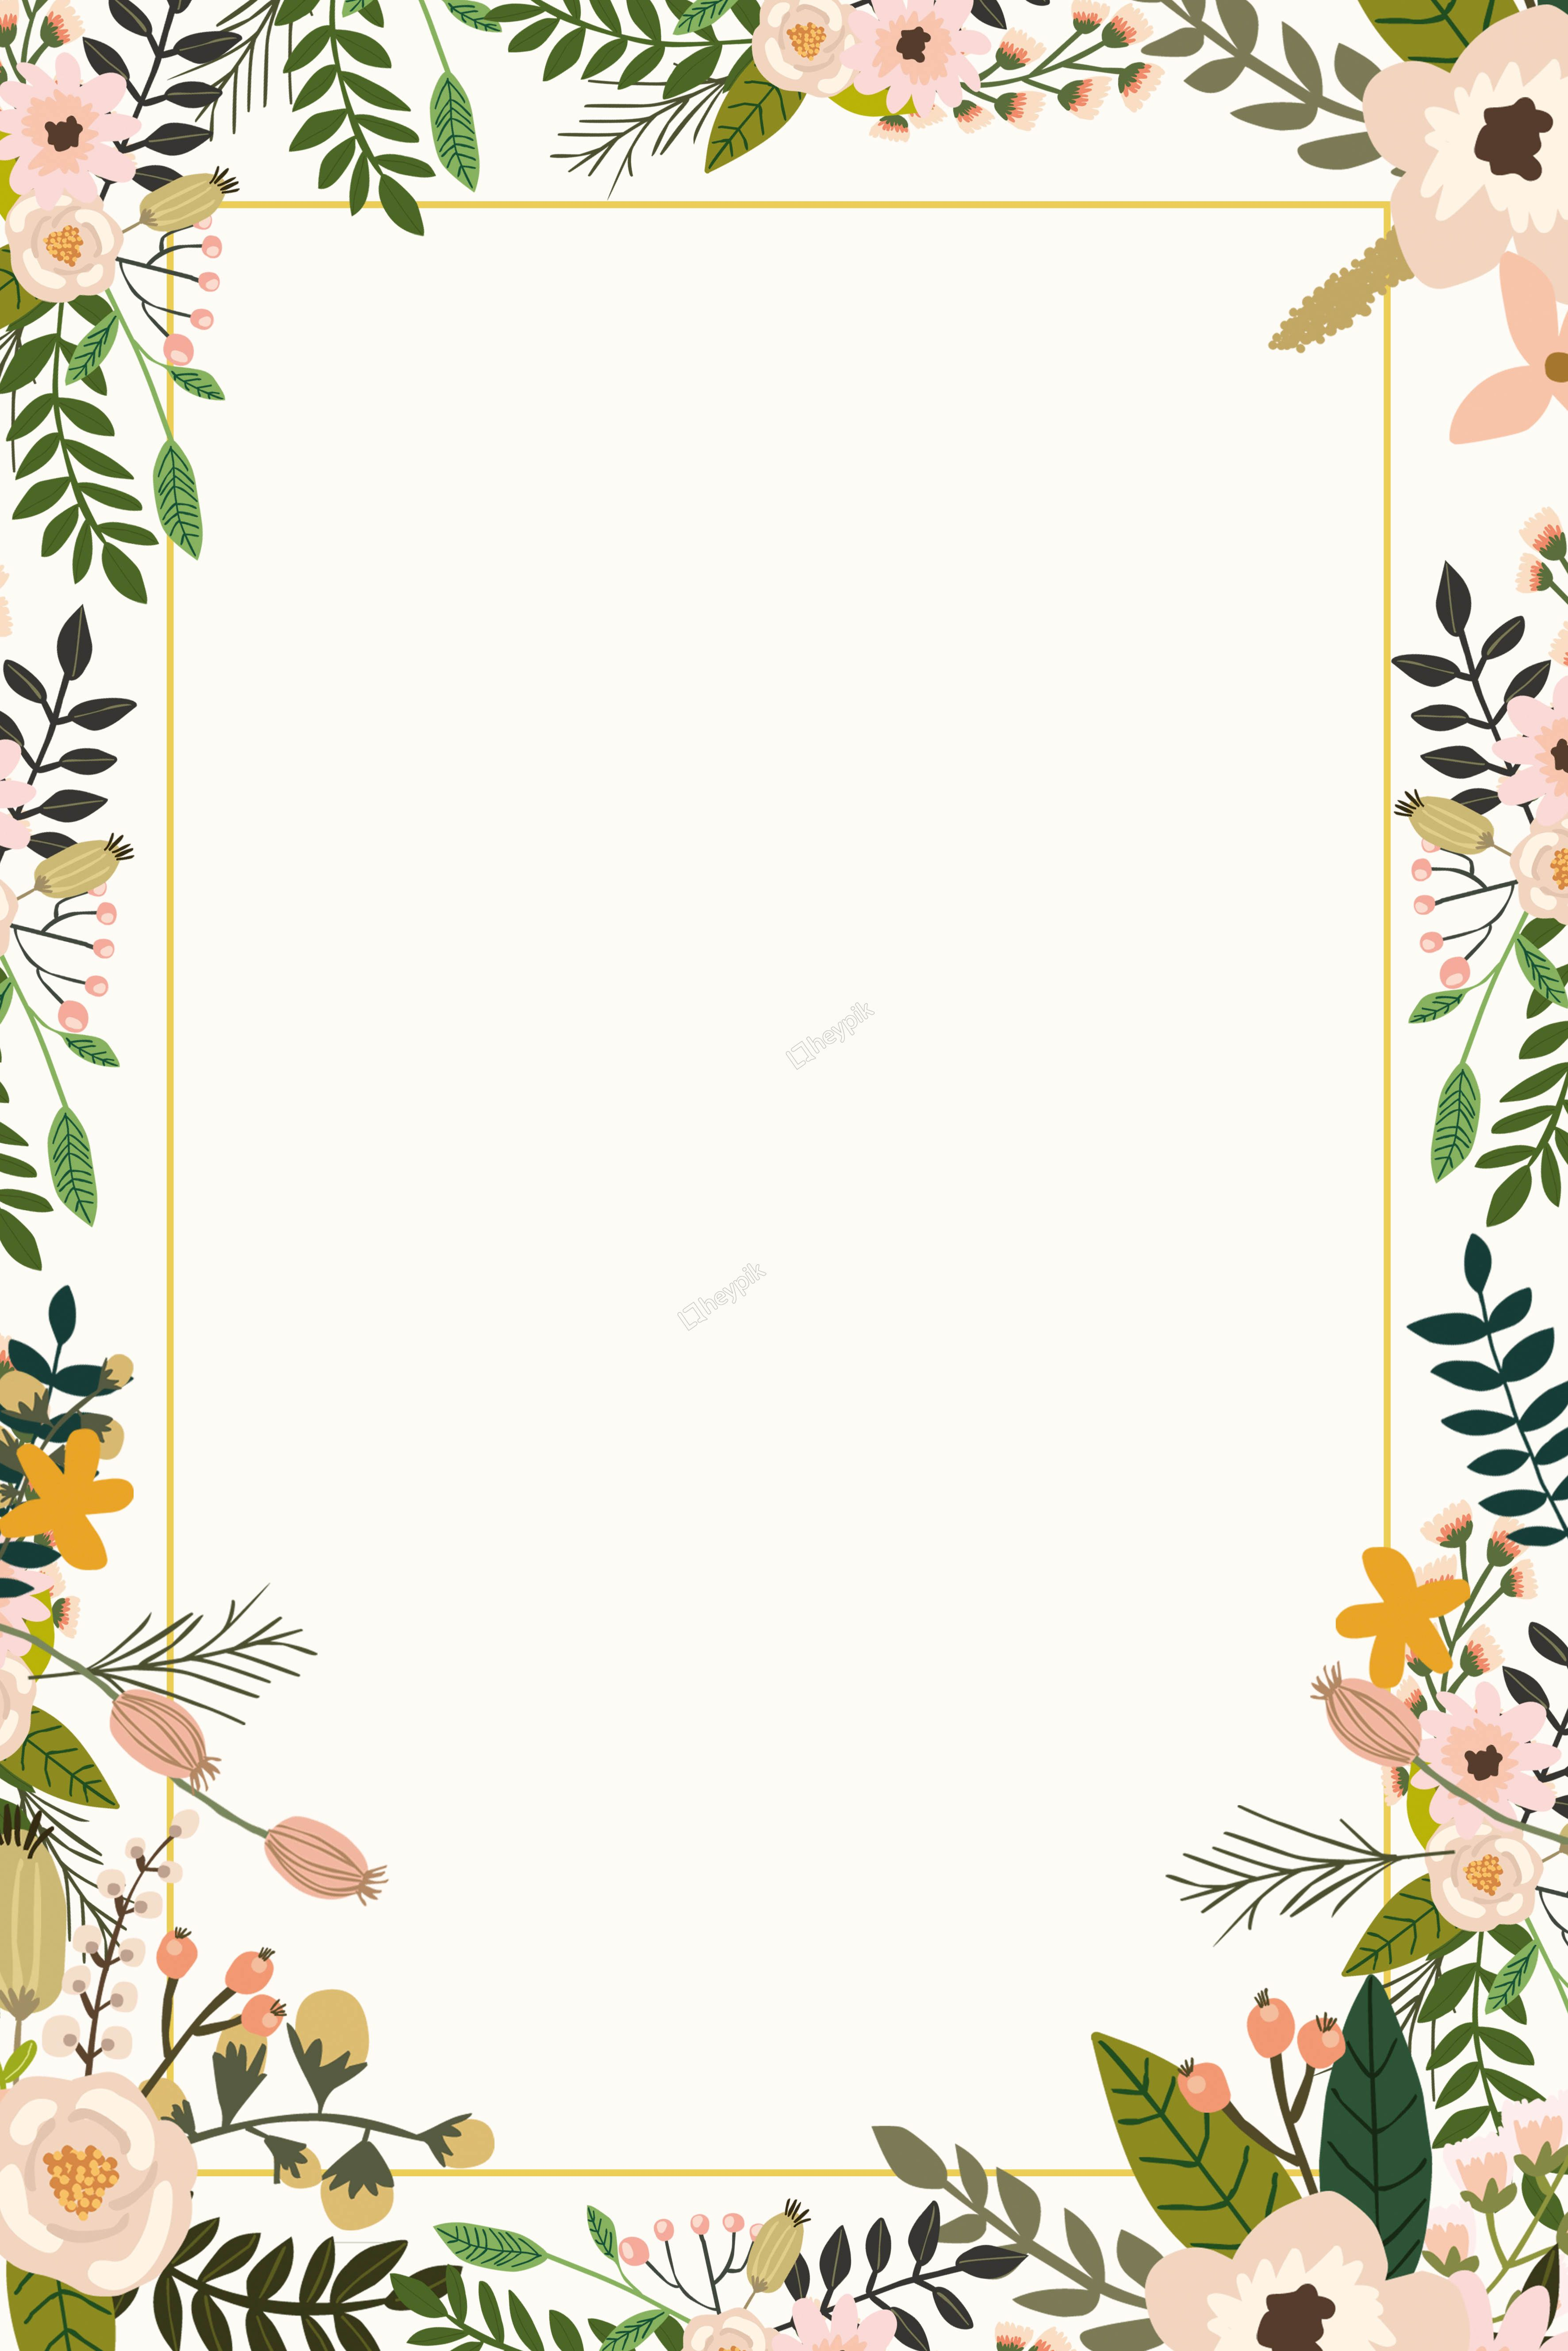 Color plant flower border background poster heypik di 2019 3545x5315